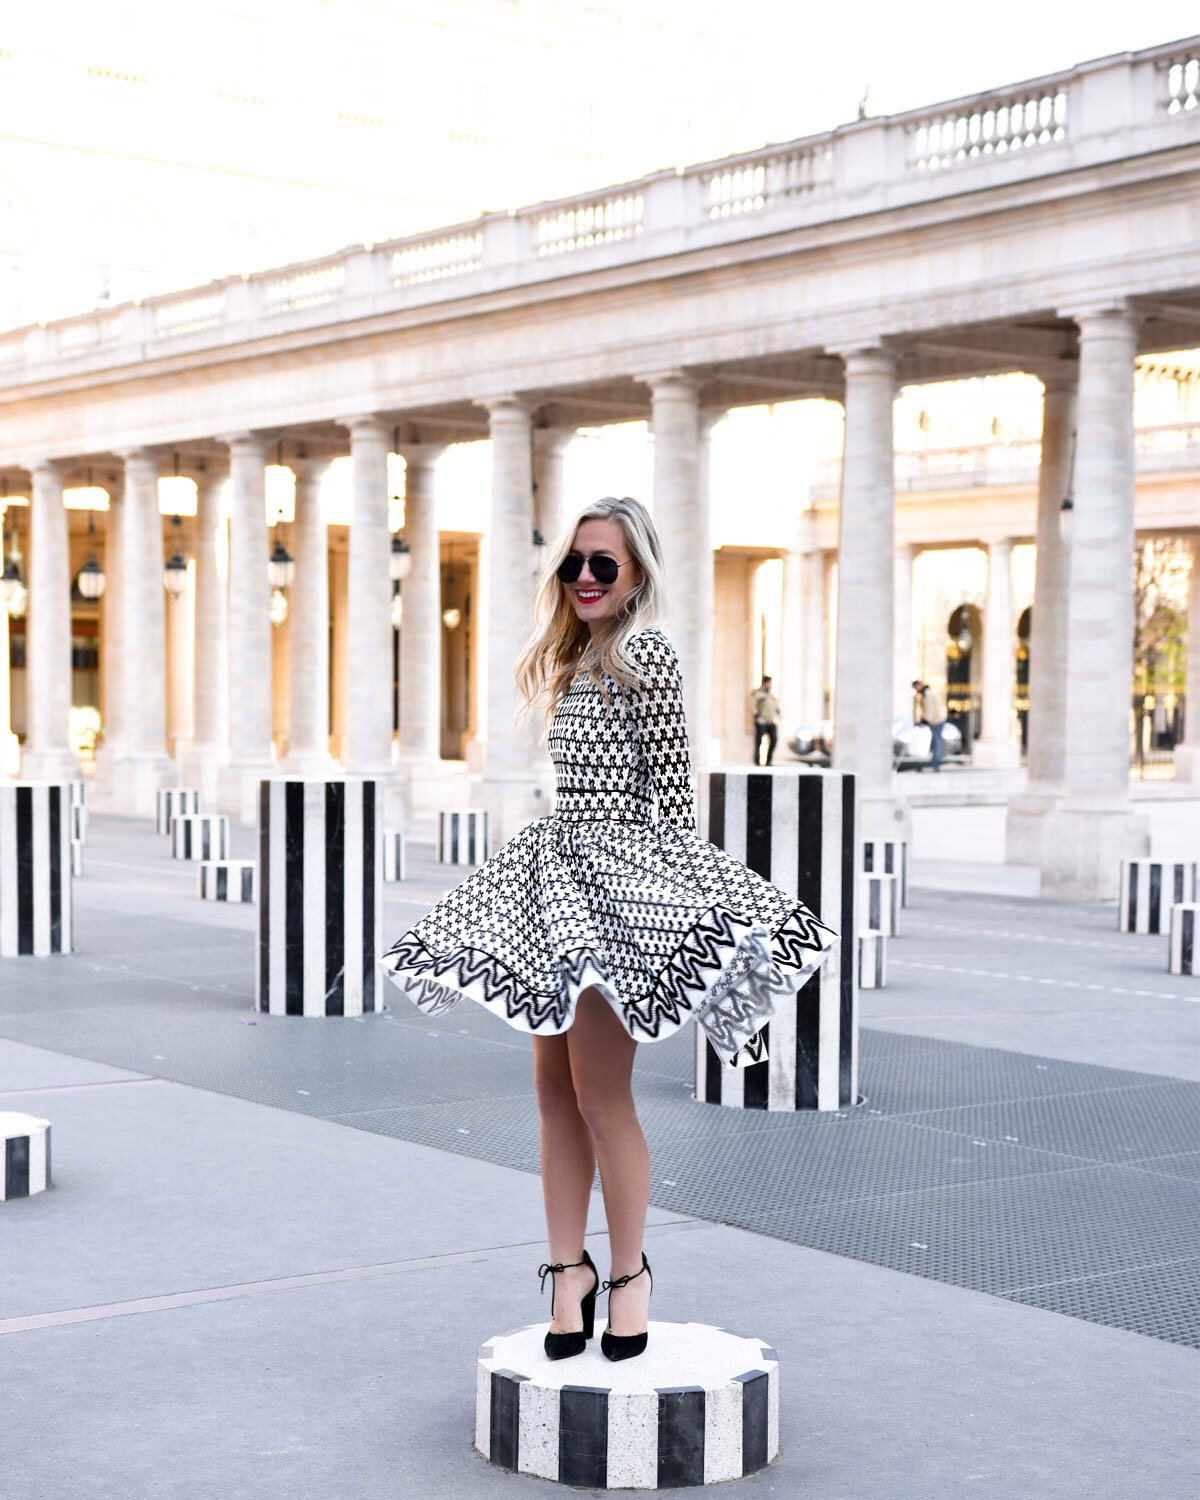 Maje-Lace-Skater-Dress, Black-and-white-dress, Maje-Dress, Paris, Lo-Murphy, Travel-Blogger, Palais-Royal, Gucci-Pearl-Handbag, Gucci-Padlock, Steve-madden-Heels